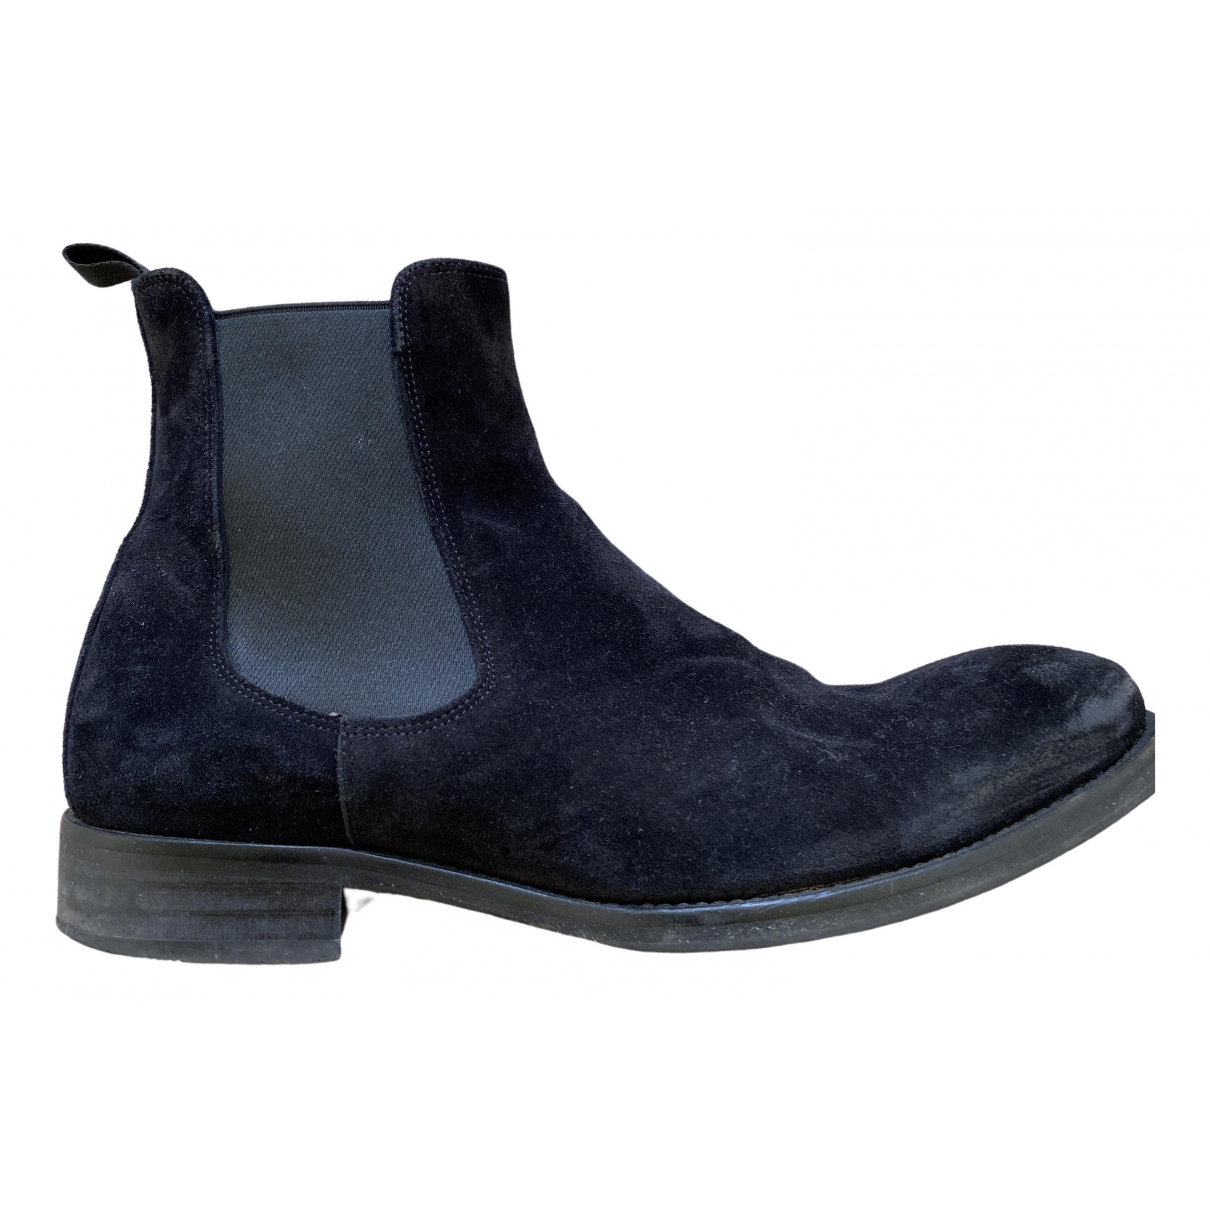 Russell & Bromley \N Black Suede Boots for Men 40 EU